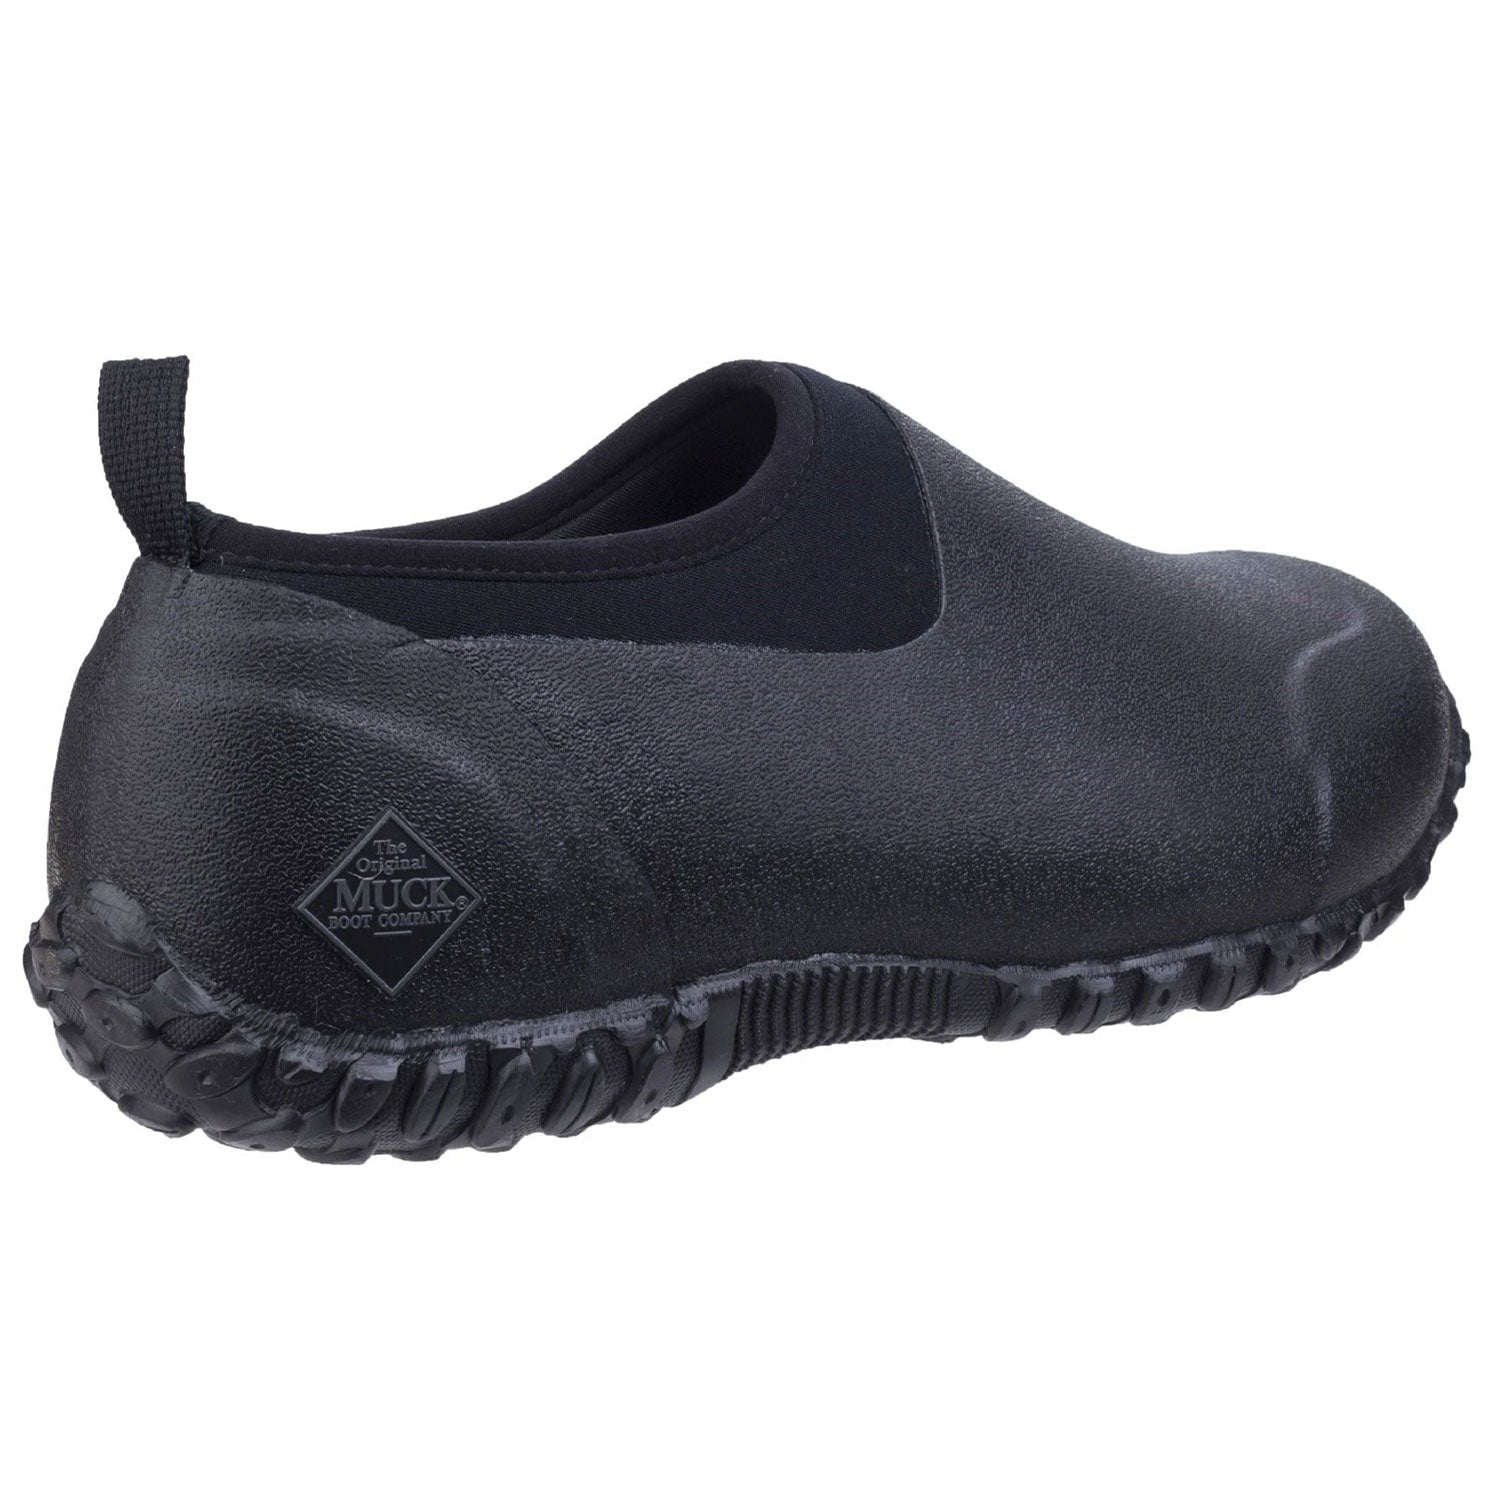 Neoprene ankle dirt protection